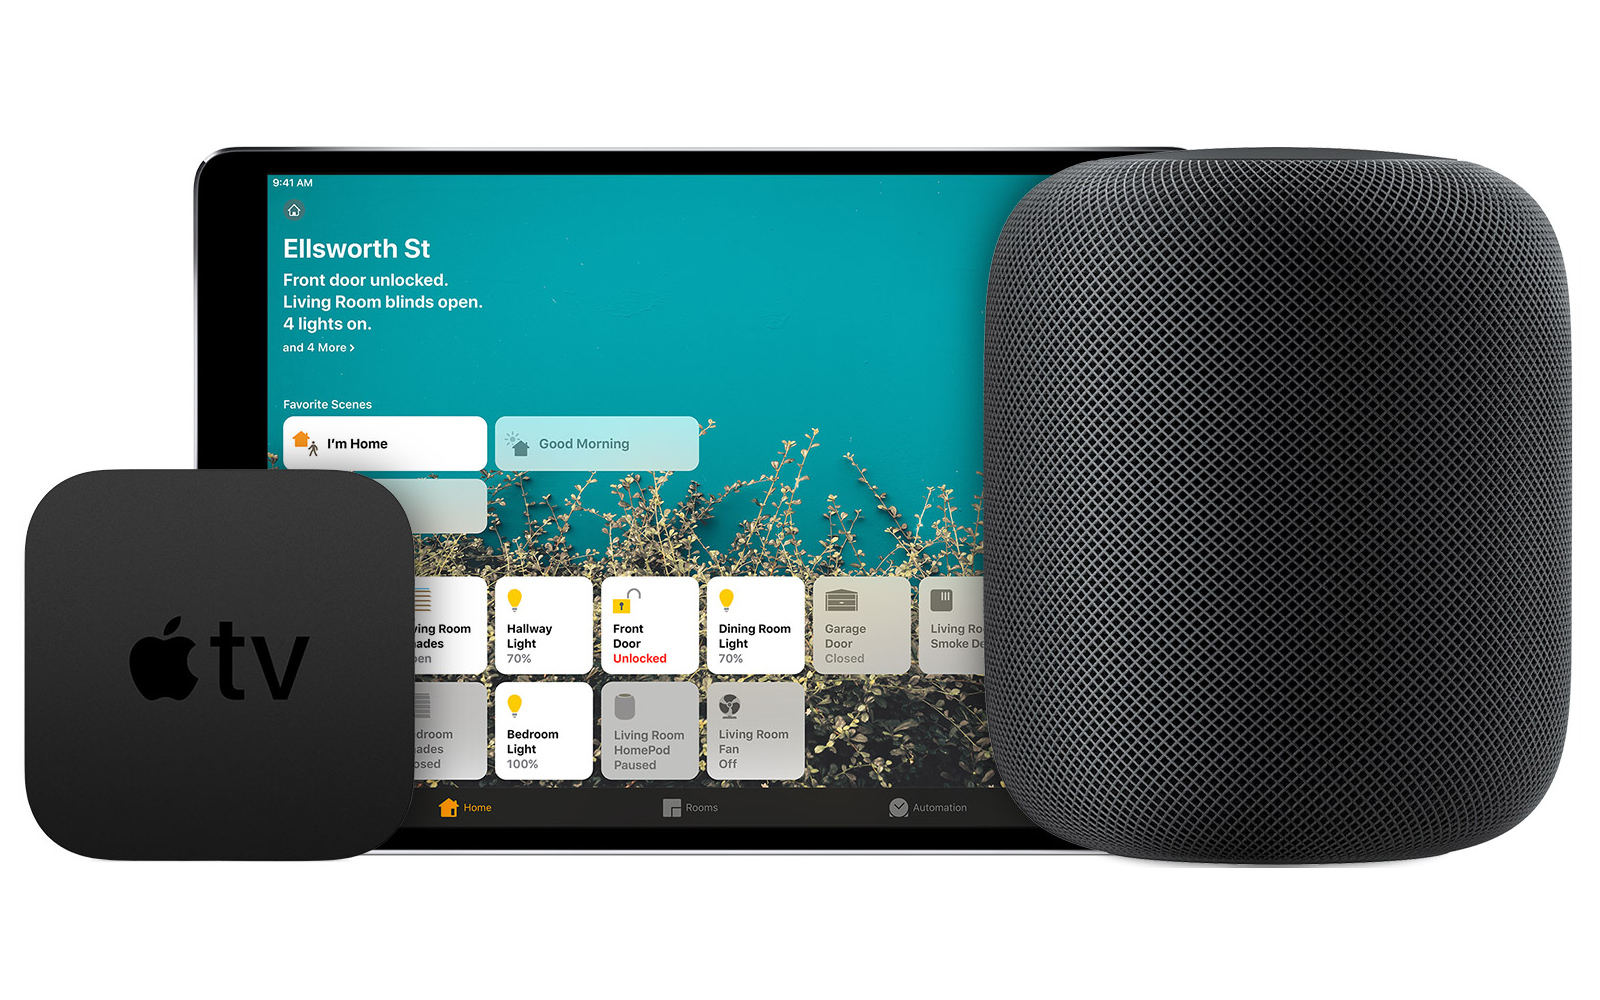 Ios12 homepod apple tv automation hero